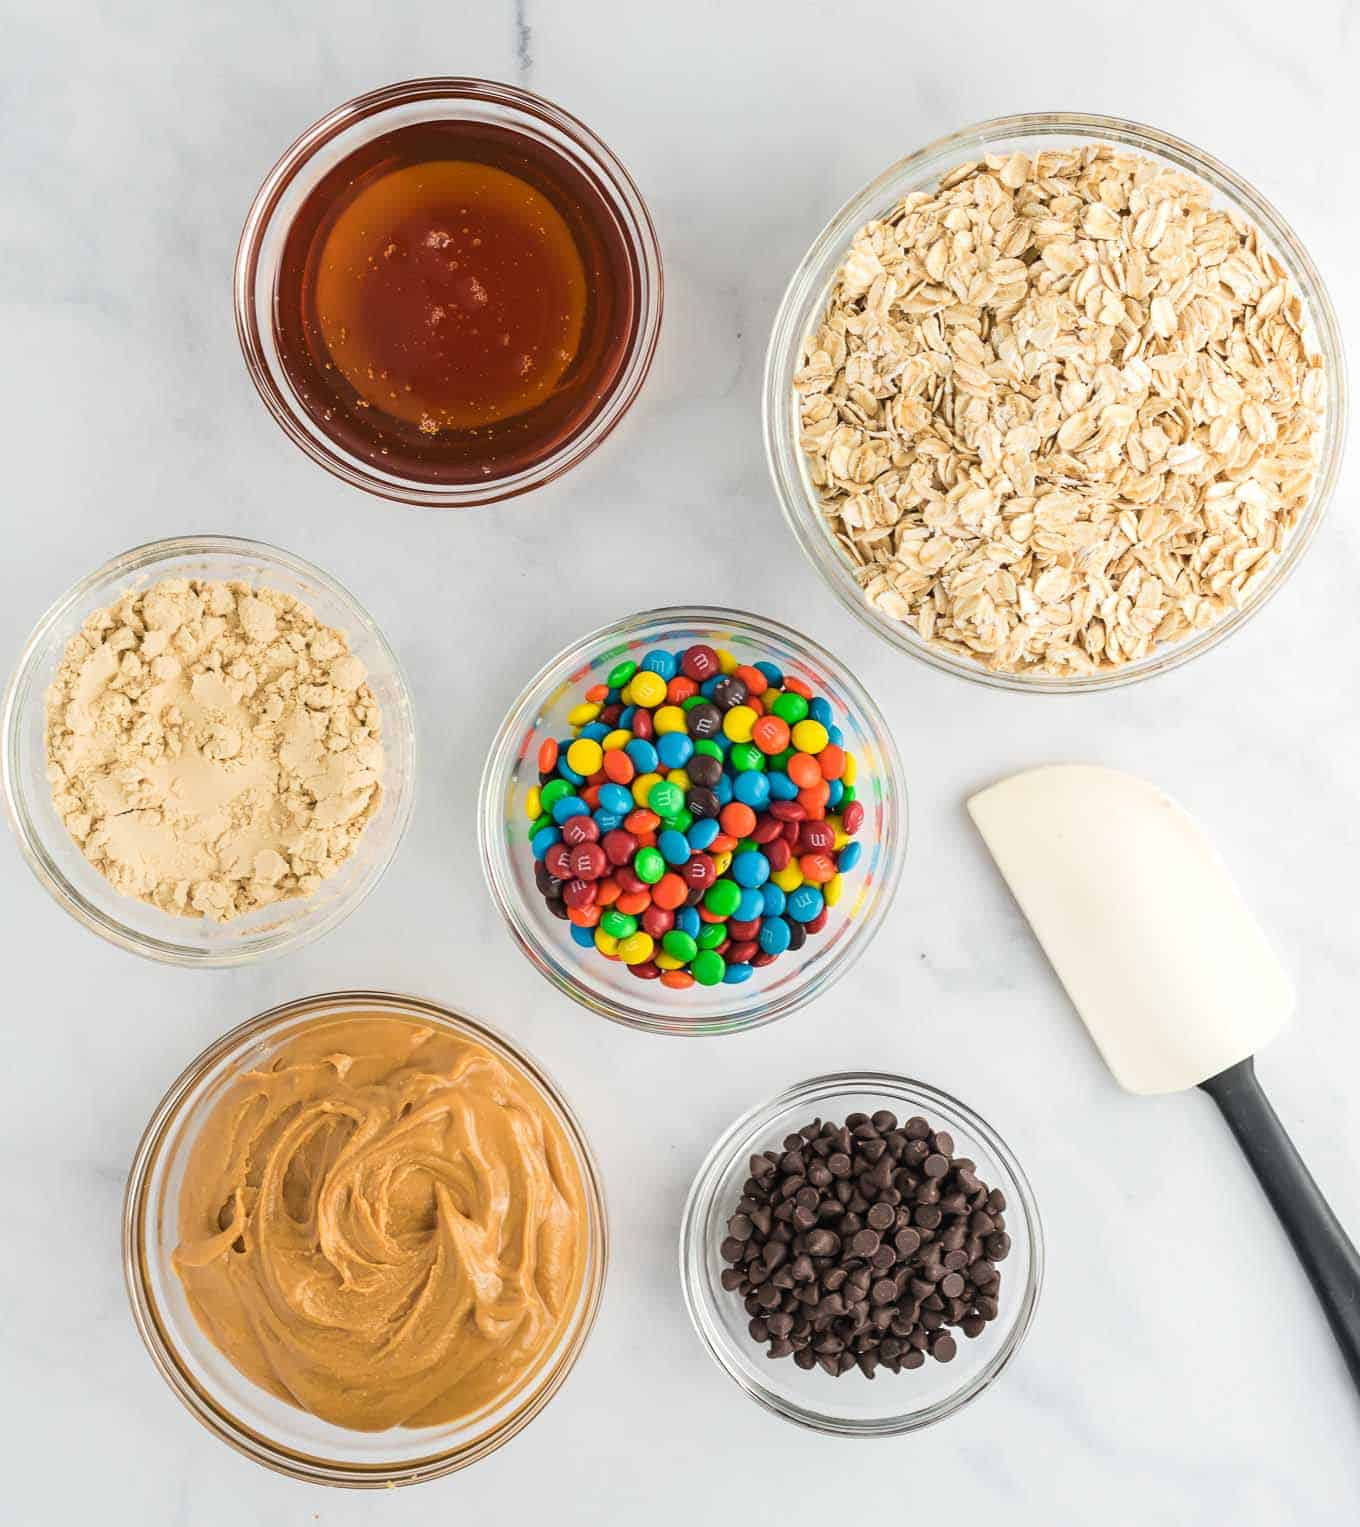 the ingredients in separate clear bowls - peanut butter, honey, protein powder, rolled oats, mini chocolate chips, and mini m&m's